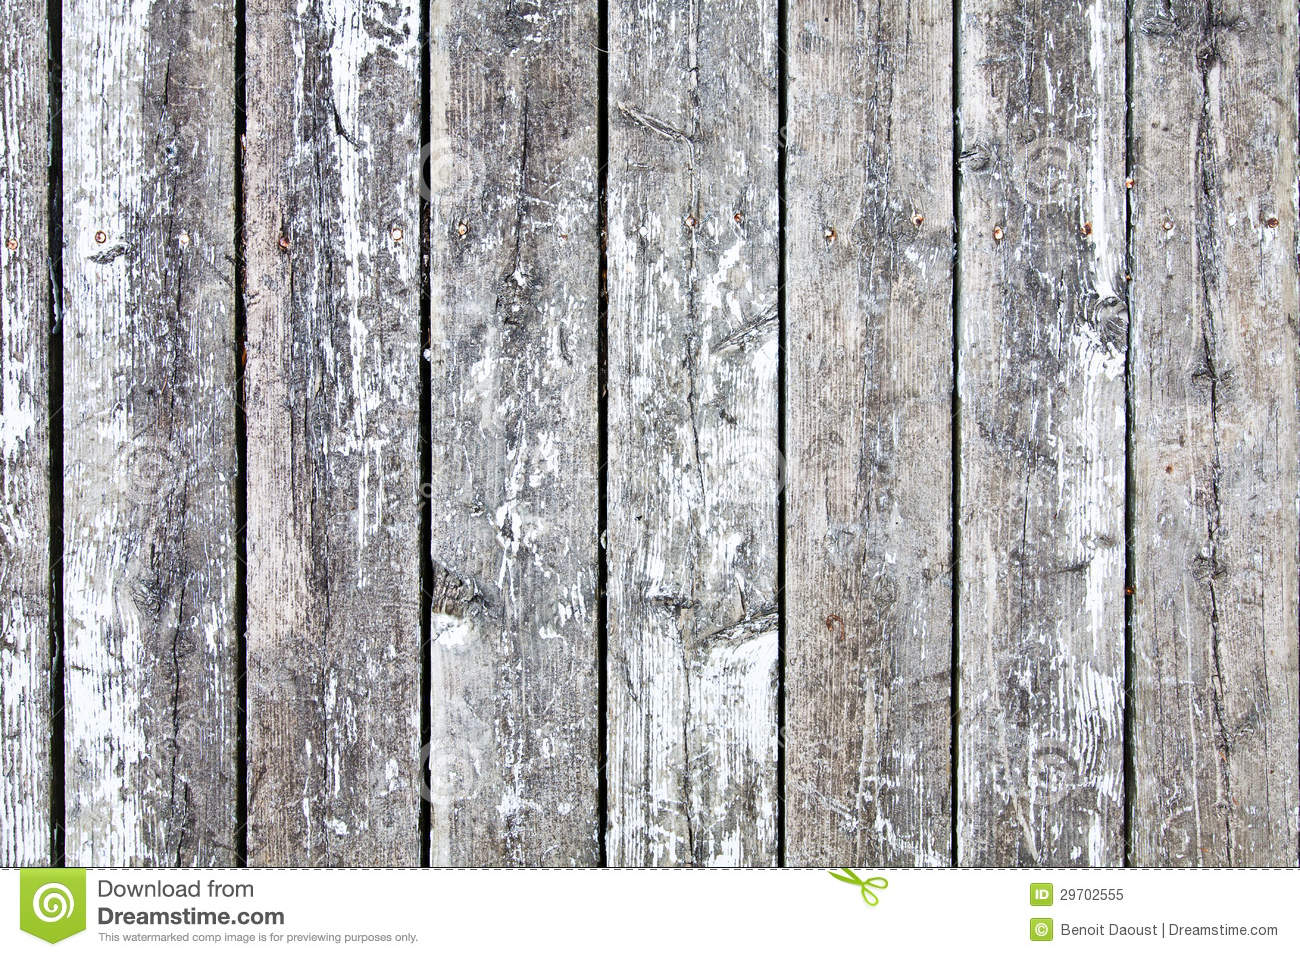 Barn board clipart.